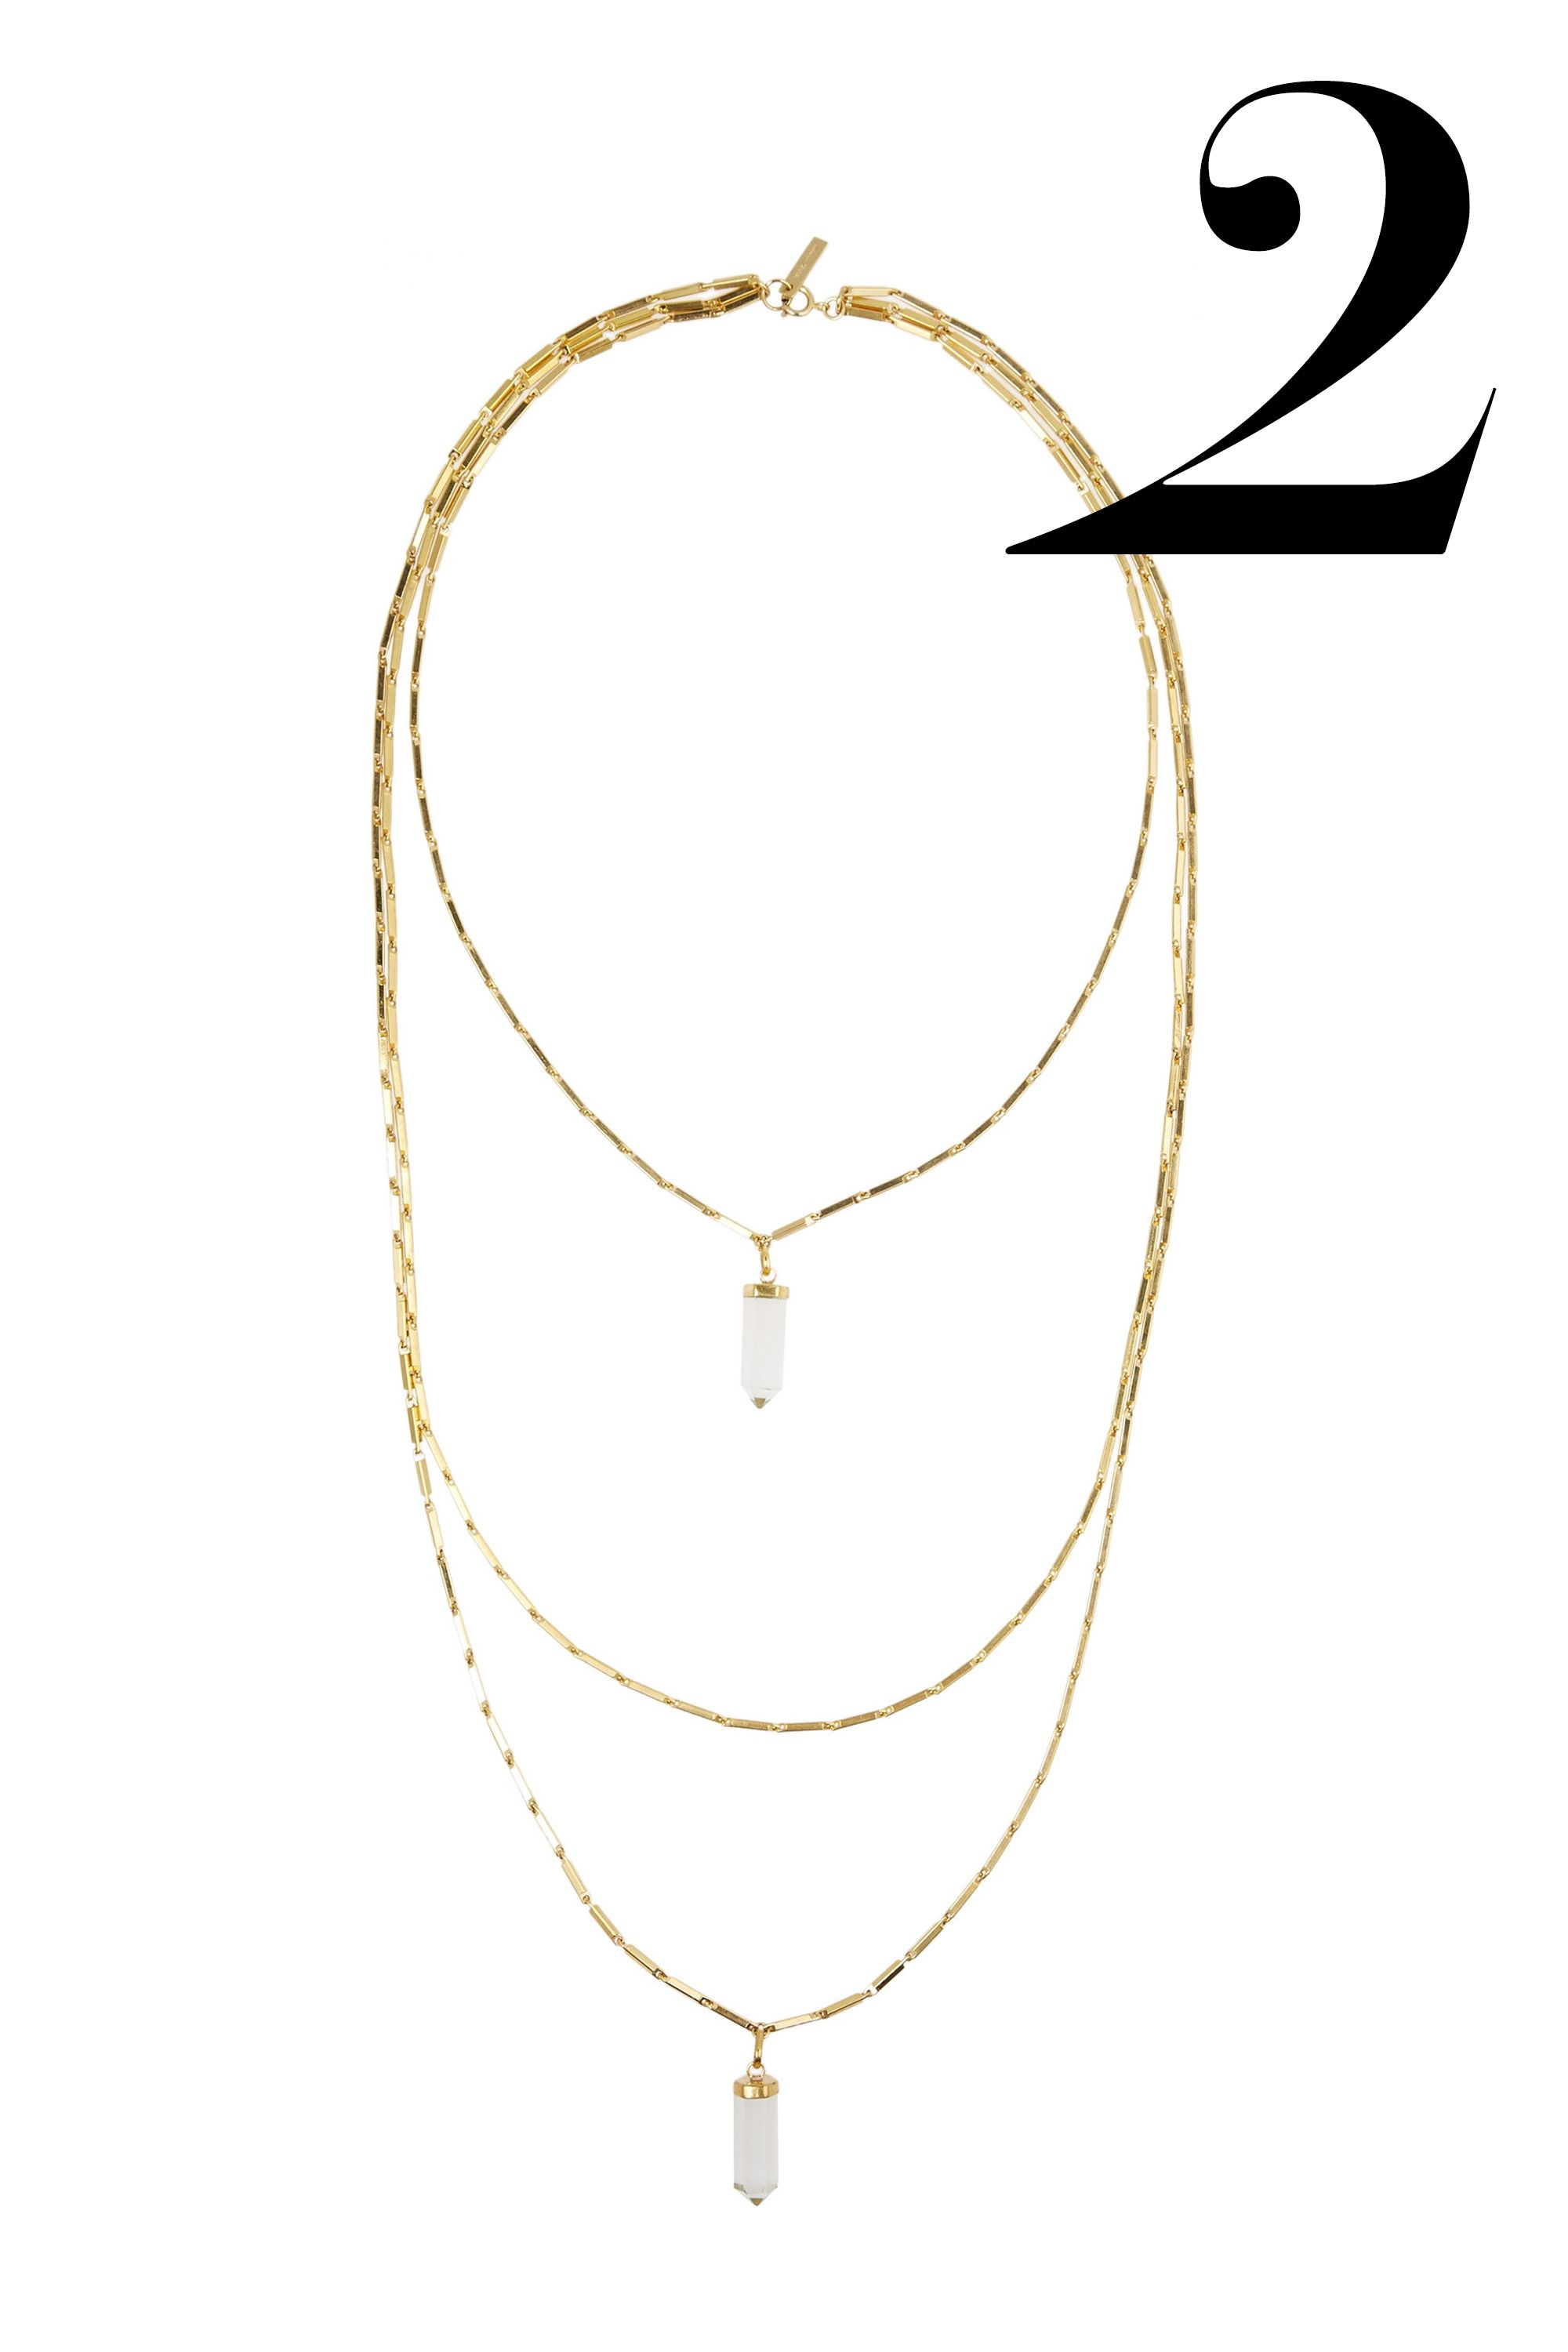 "<em>Isabel Marant necklace, $228, <a href=""http://www.theoutnet.com/en-US/product/Isabel-Marant/New-Day-gold-tone-crystal-necklace/528067"" target=""_blank"">theoutnet.com</a>.</em>"